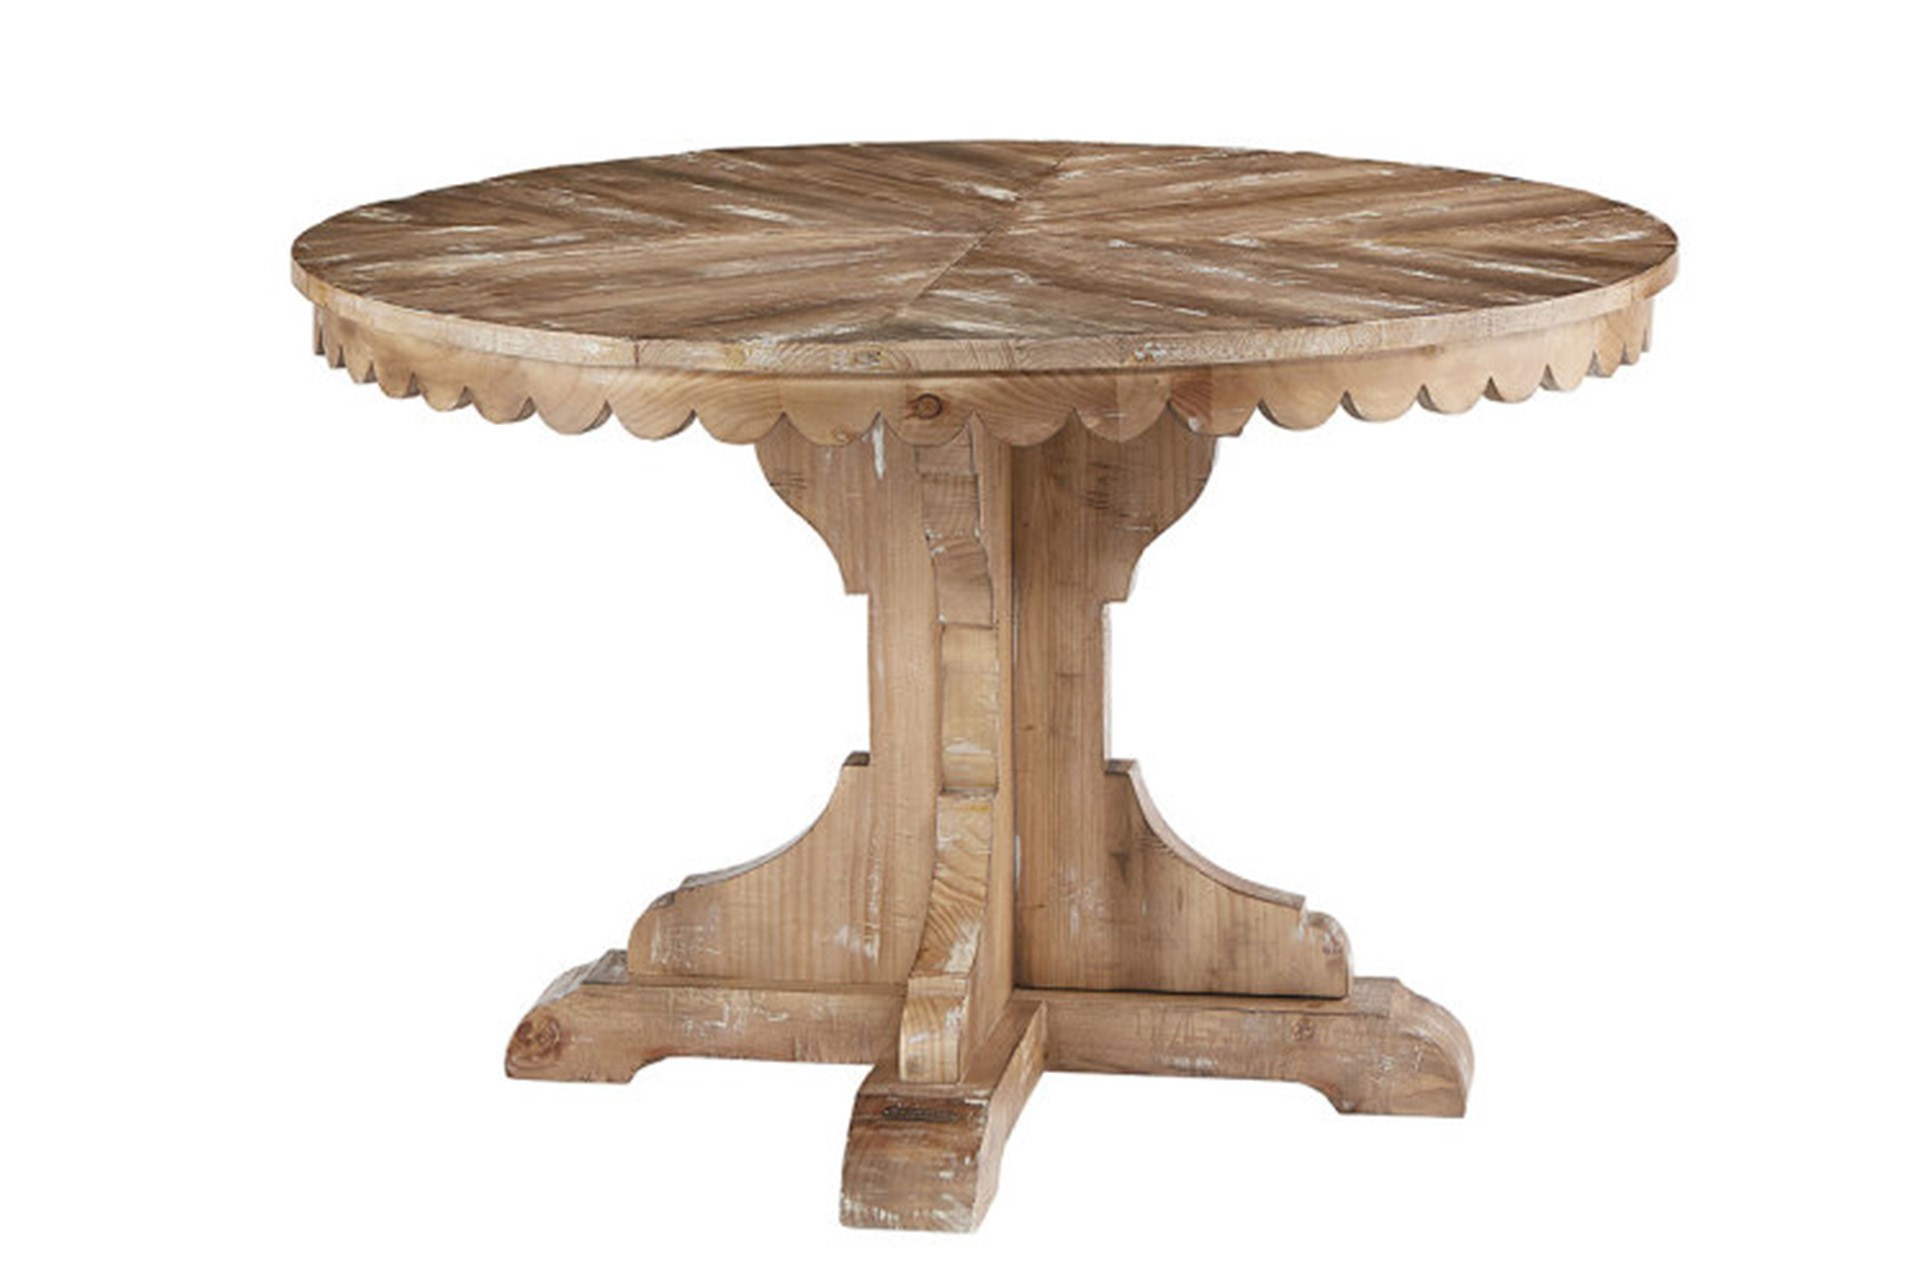 Magnolia home top tier round dining table by joanna gaines qty 1 has been successfully added to your cart